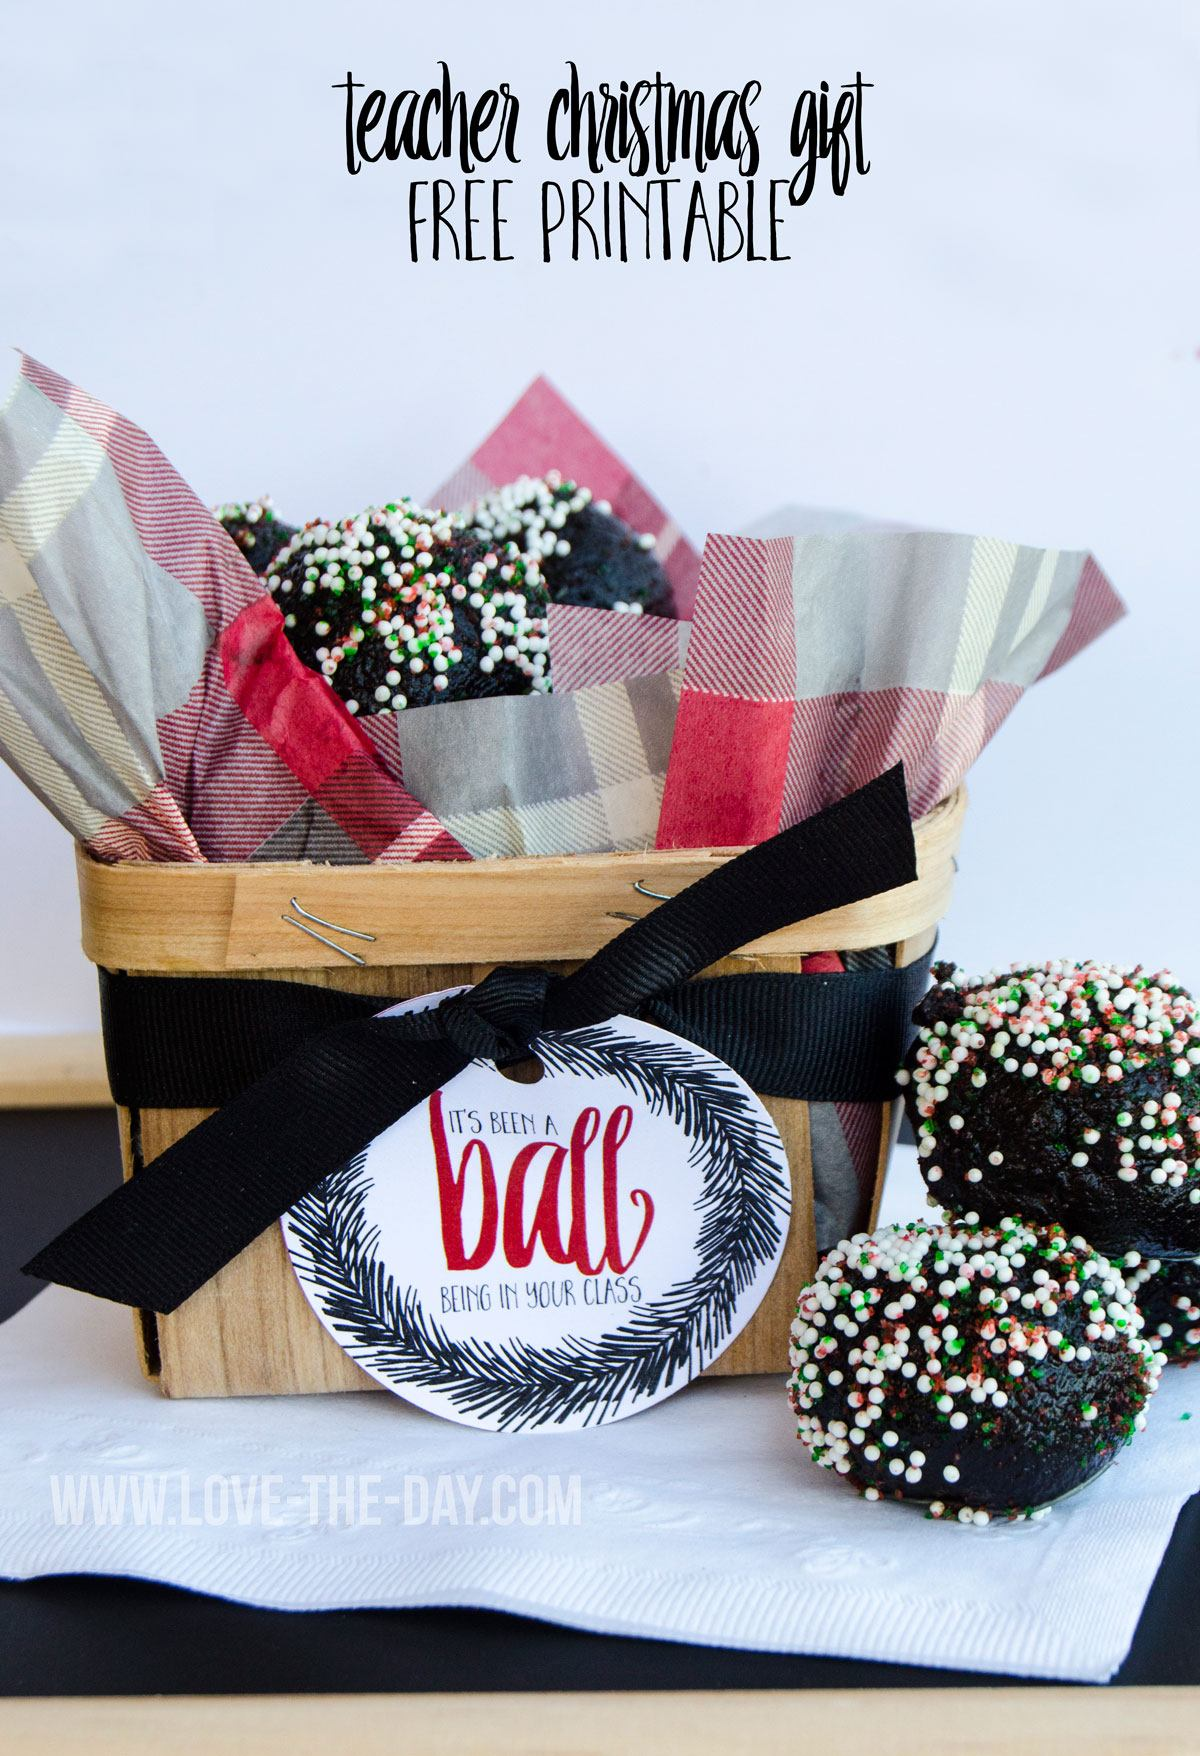 OREO Cookie Ball Christmas Gift Idea and FREE Printable by Love The Day